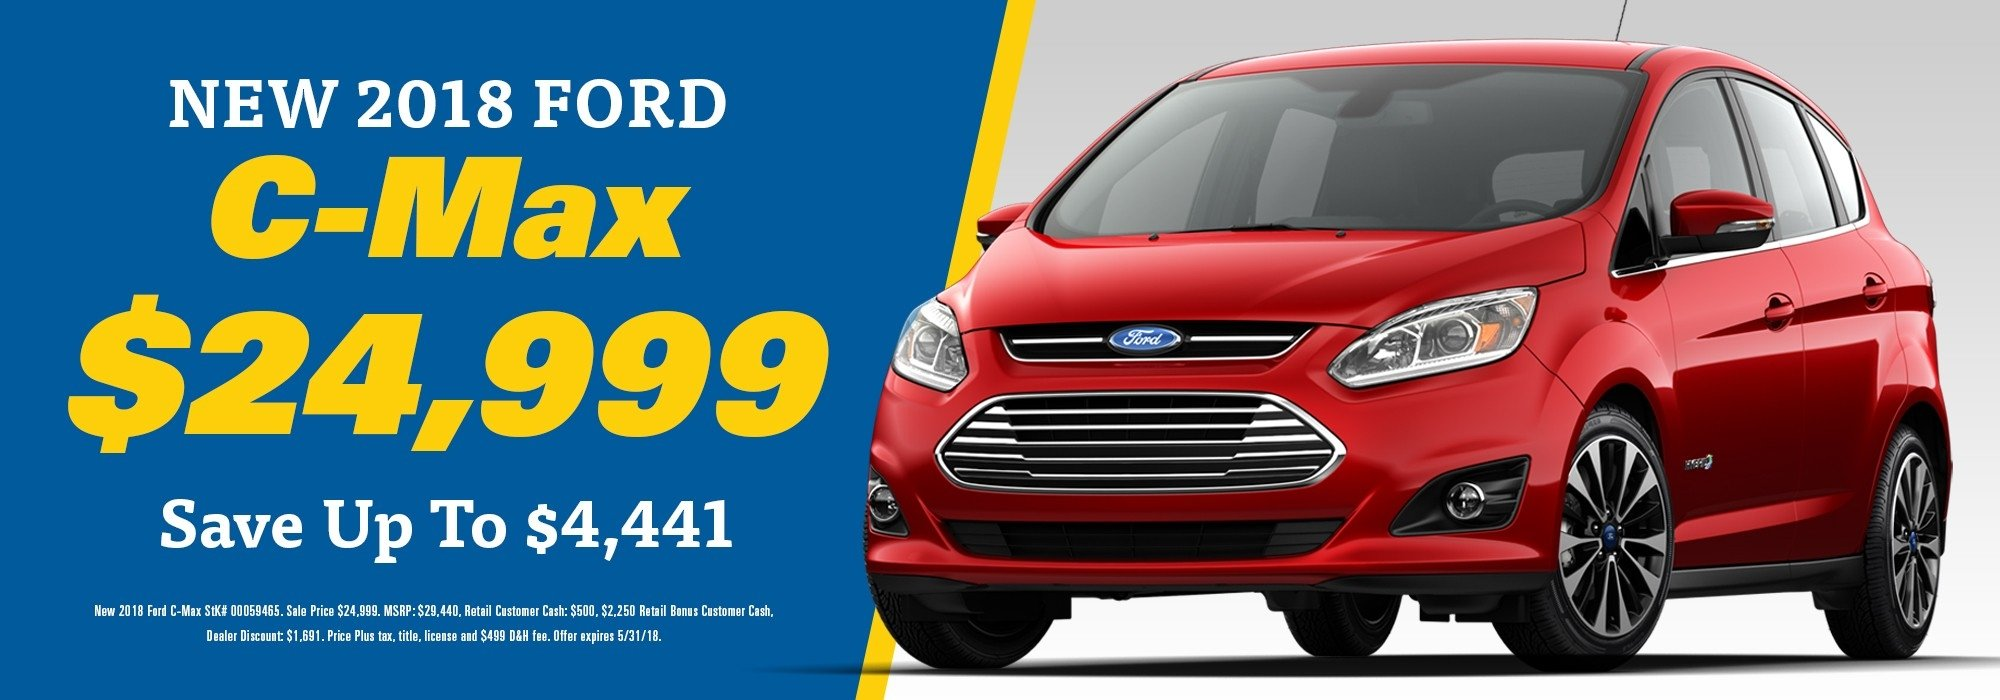 new 2018 ford cmax special